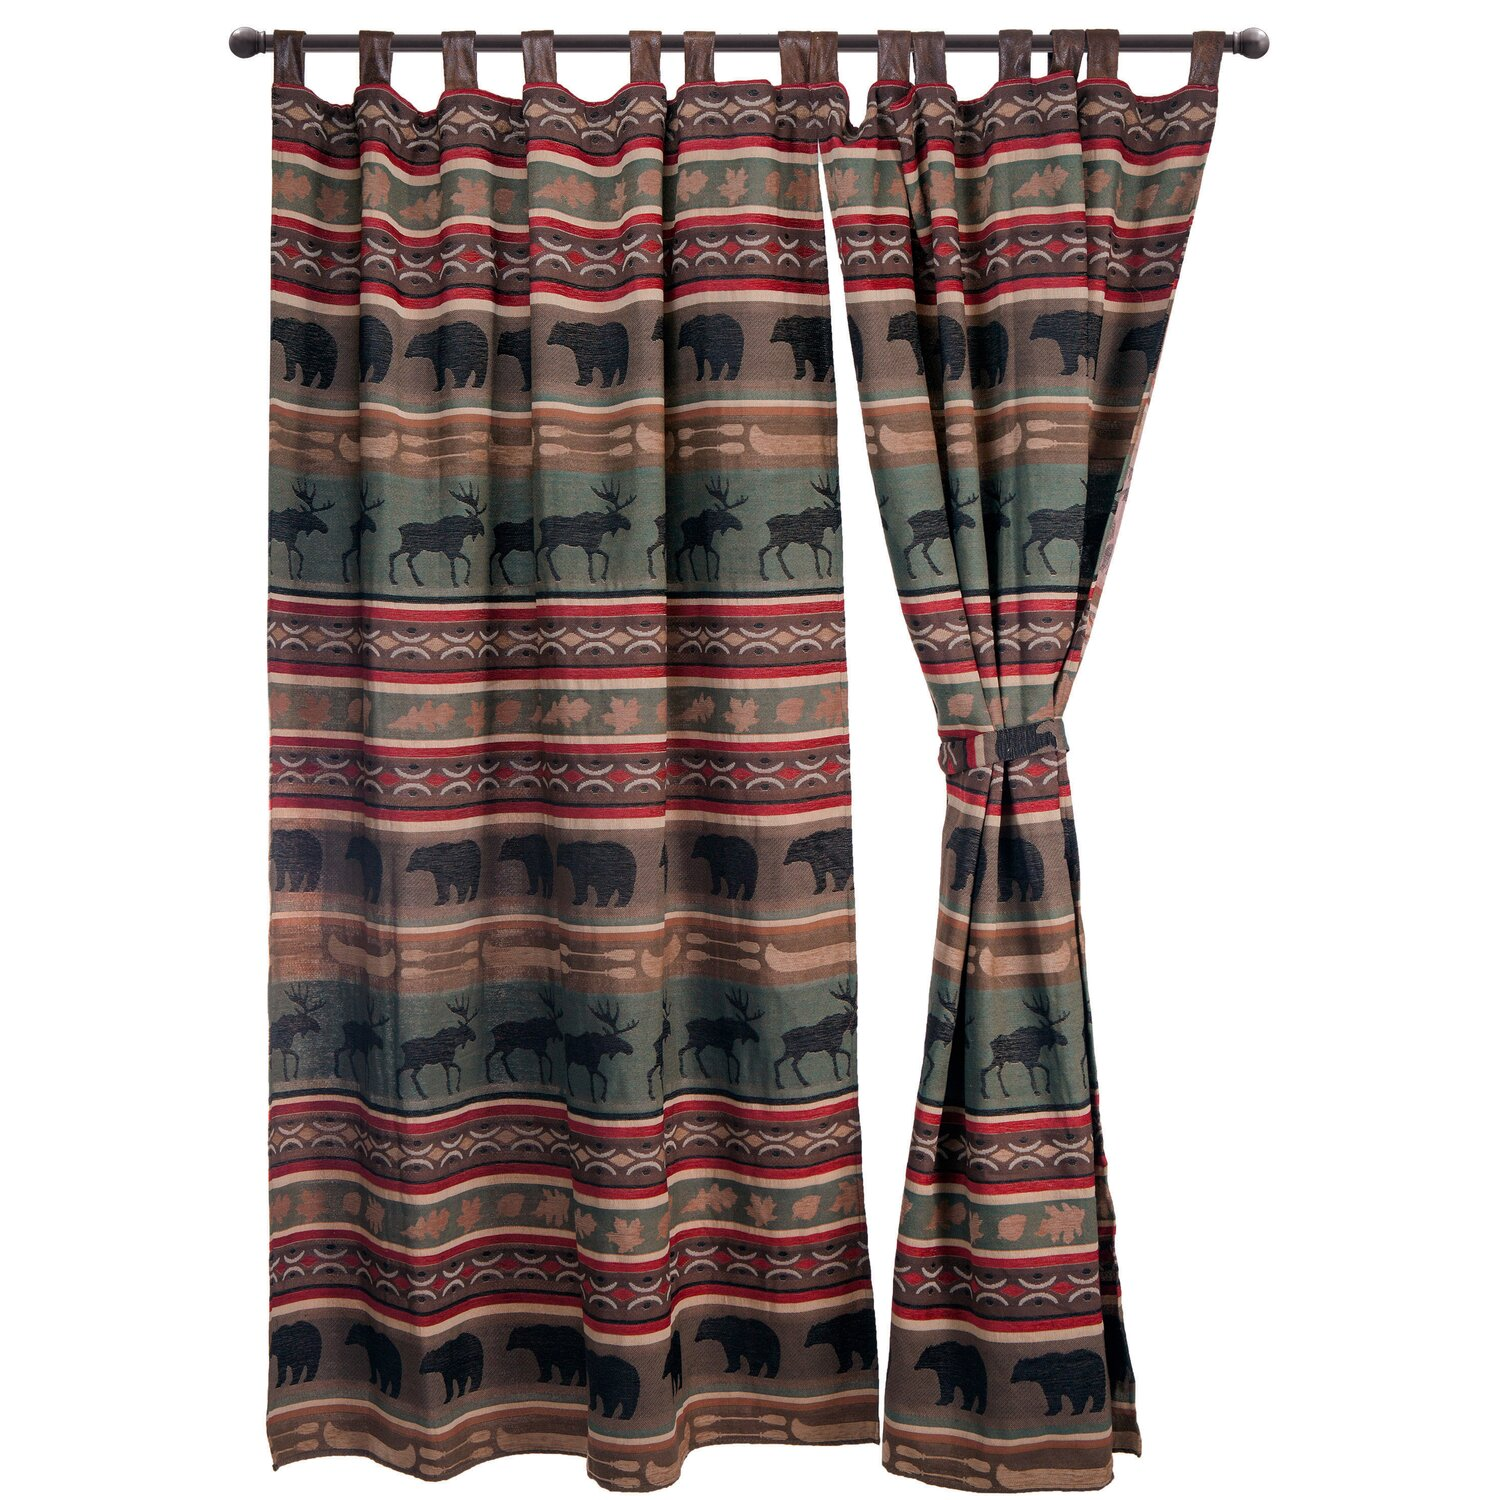 Backwoods Drape Set